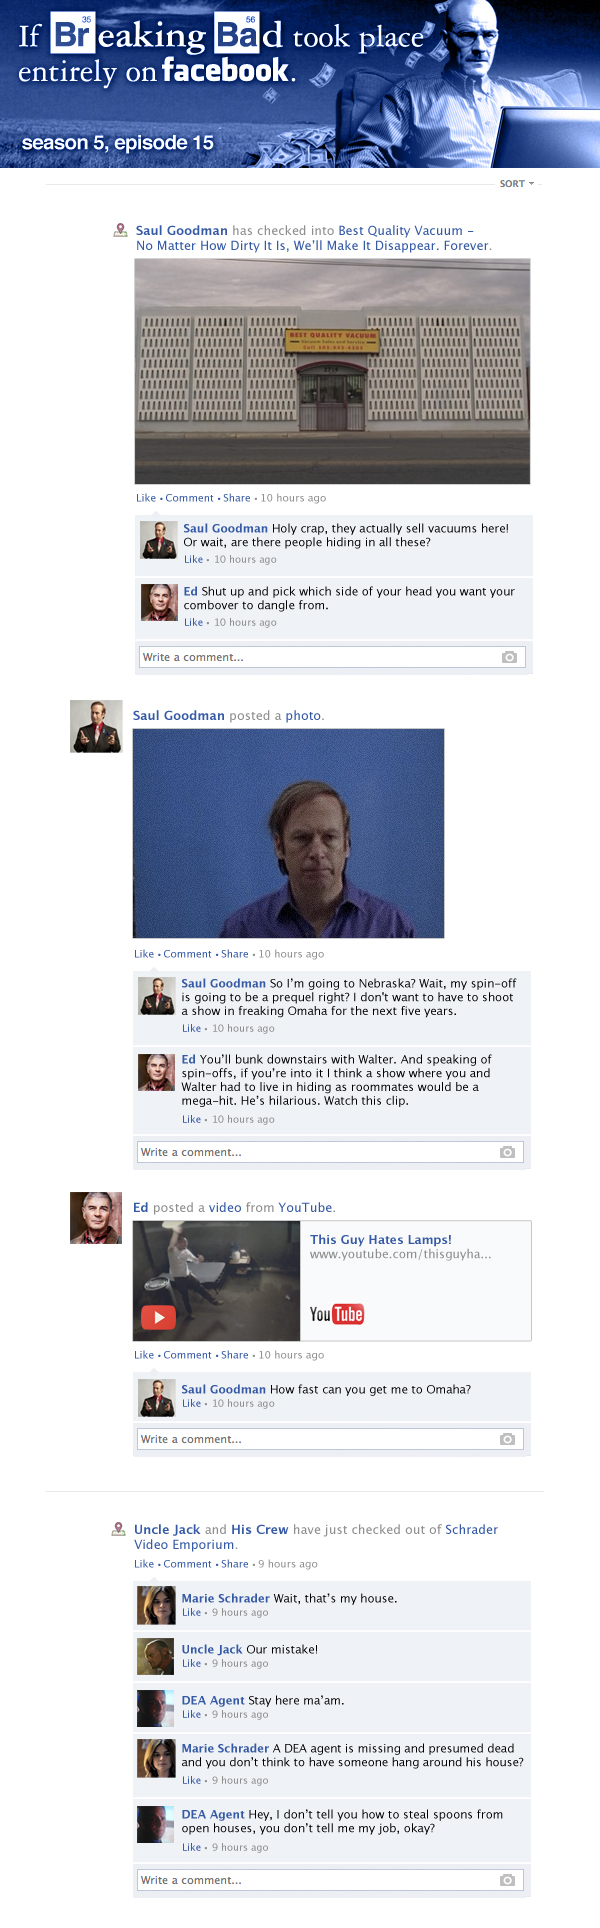 If Breaking Bad took place entirely on Facebook - Season 5, Episode 15.